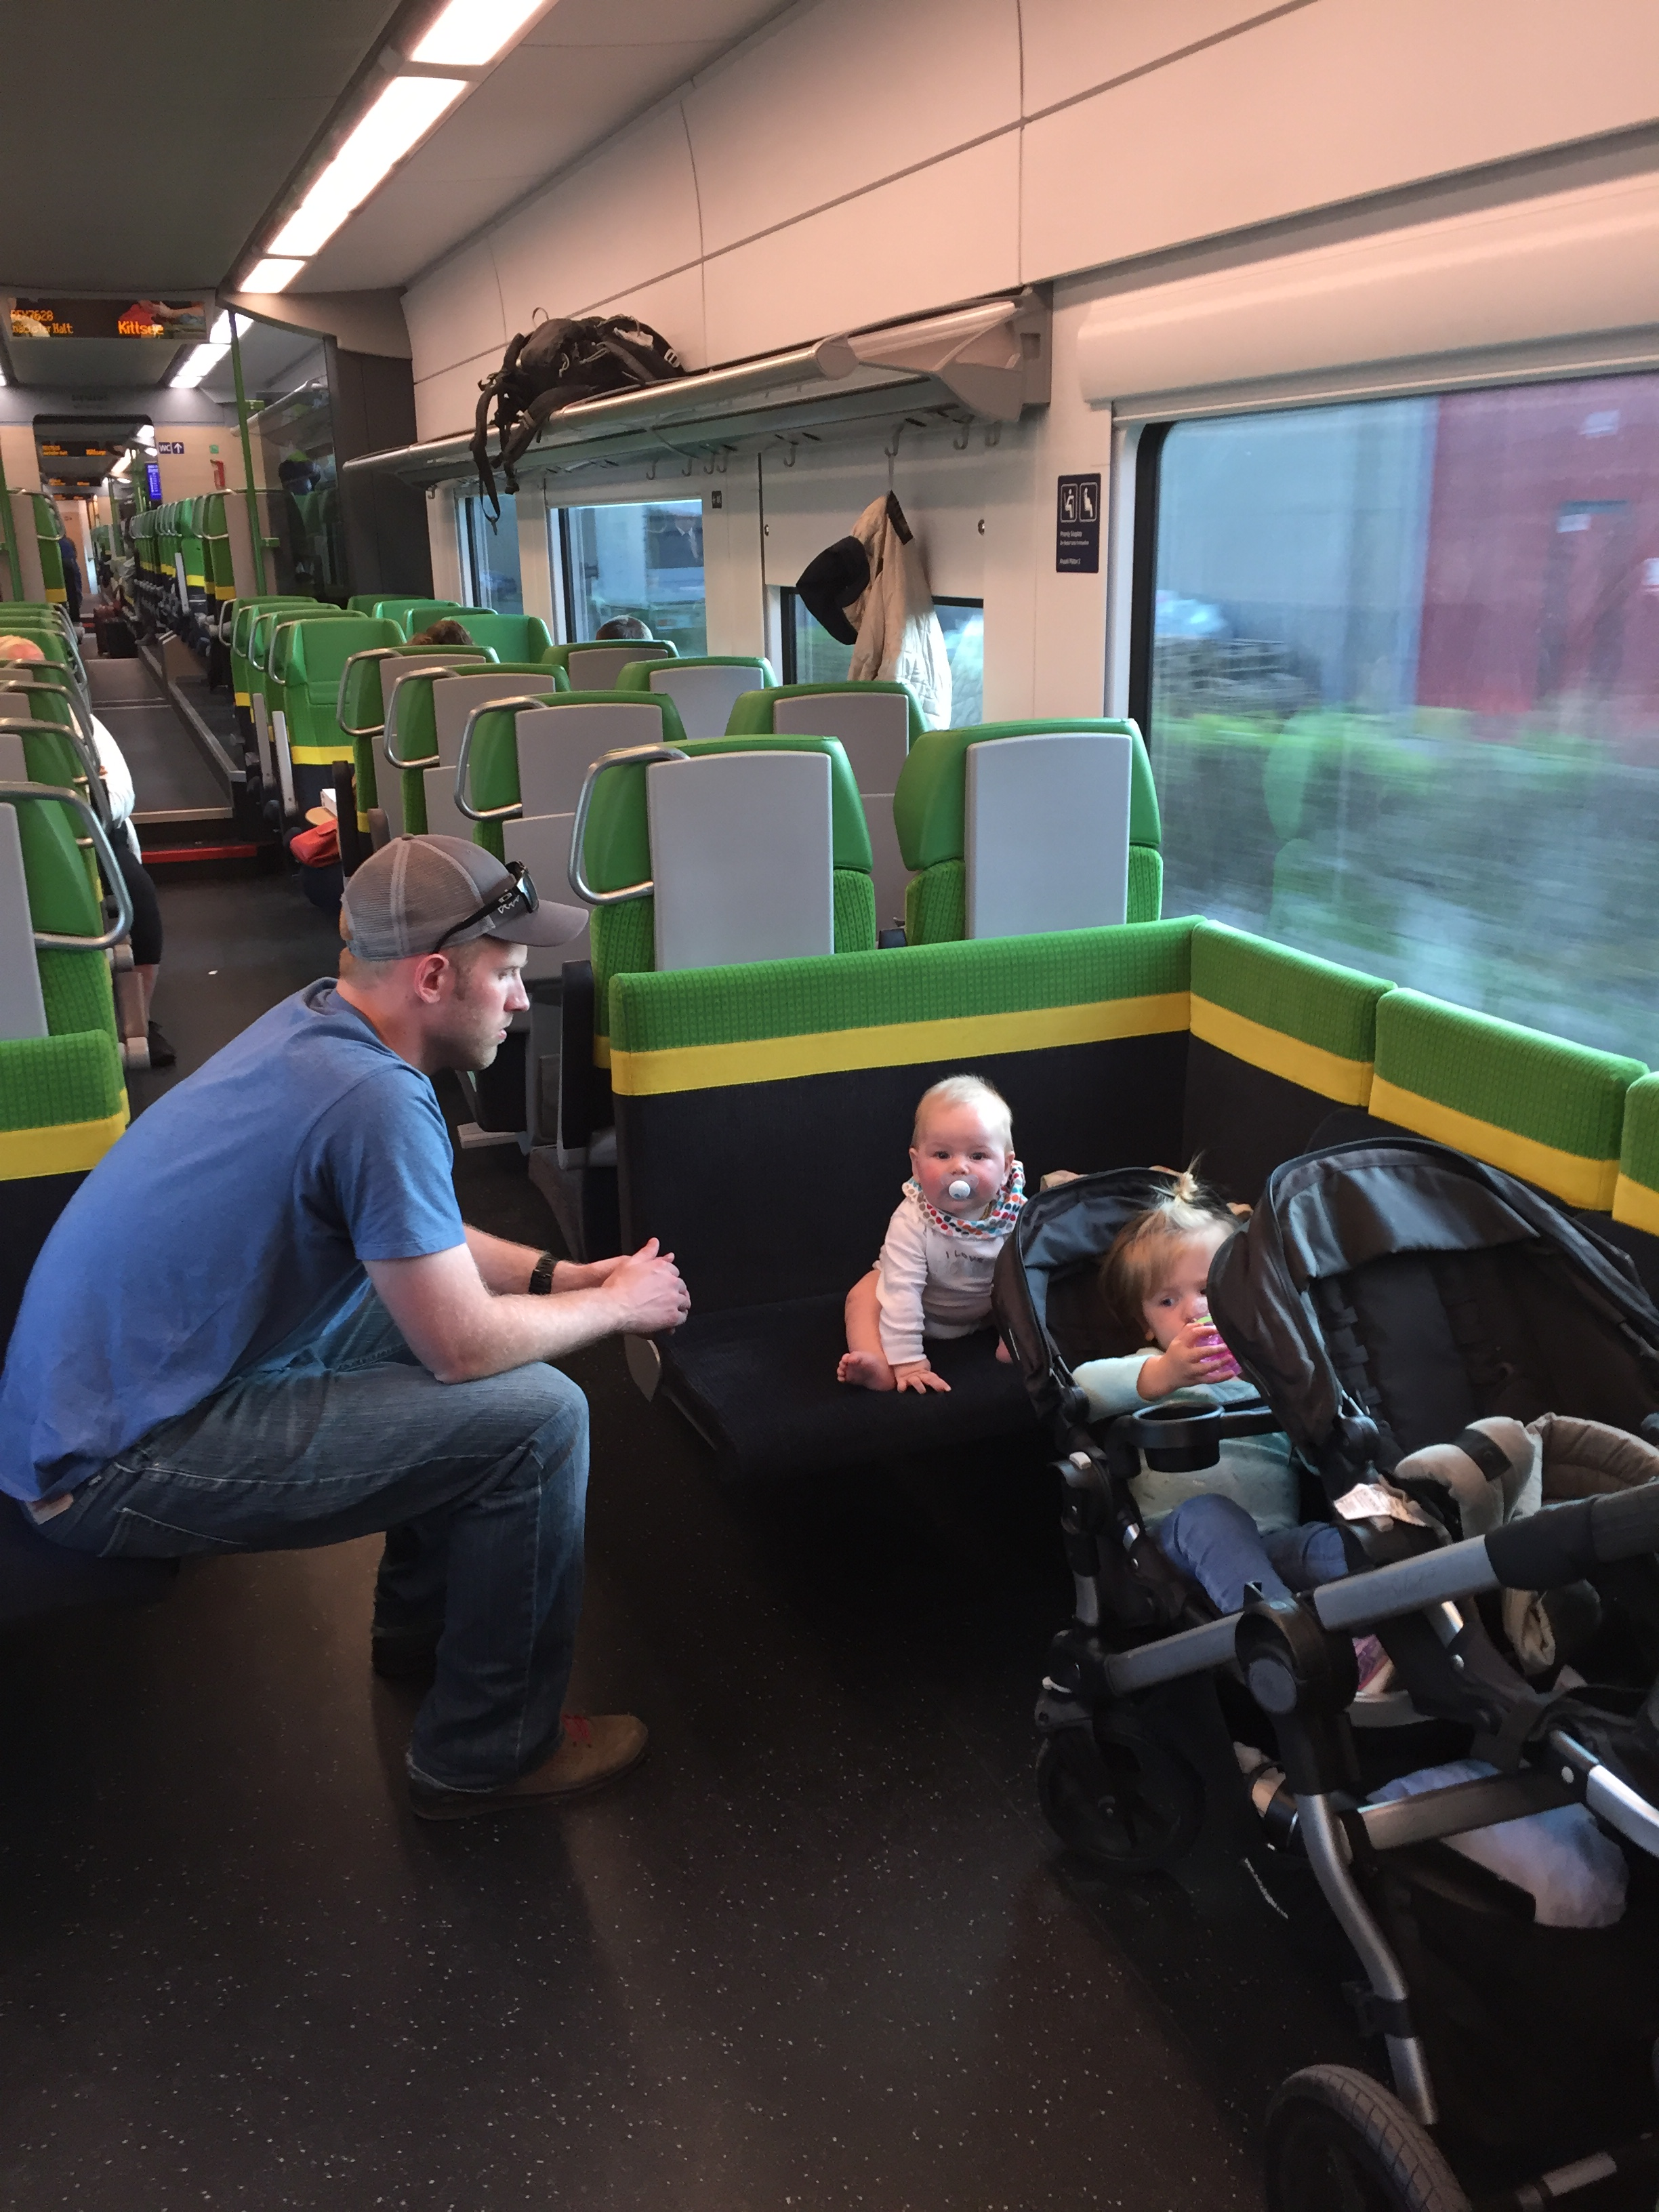 A commuter train from Bratislava to Vienna was empty, so the we parked the stroller and the kids rode in it most of the way!